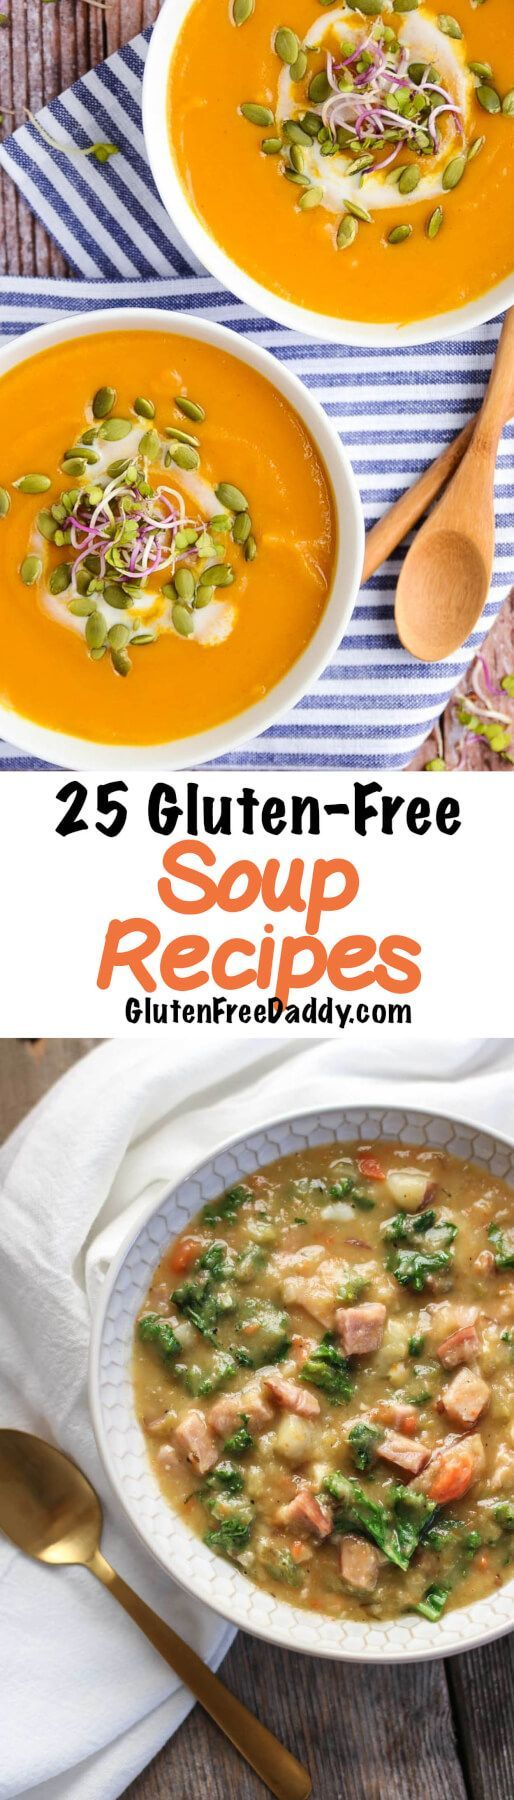 25 of the Best Gluten-Free Soup Recipes